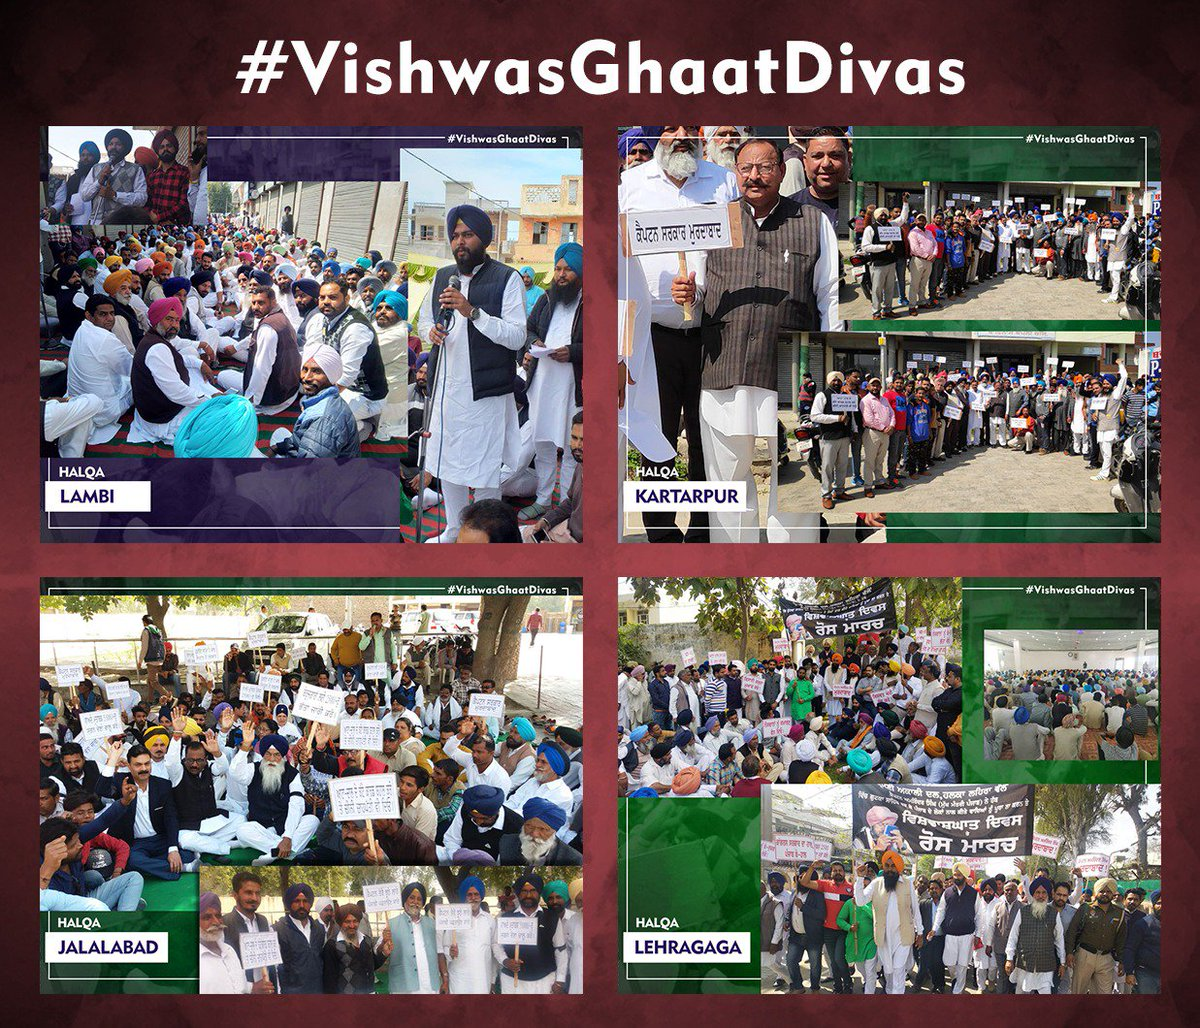 SAD &amp; BJP today jointly observed #VishwasghaatDivas (Day of deception) on completion of two years of Congress government led by captain Amarinder Singh demonstrating that the government had failed to honour its commitments made in the poll manifesto of the party 2 years ago./1 <br>http://pic.twitter.com/6iPcyKEo7E